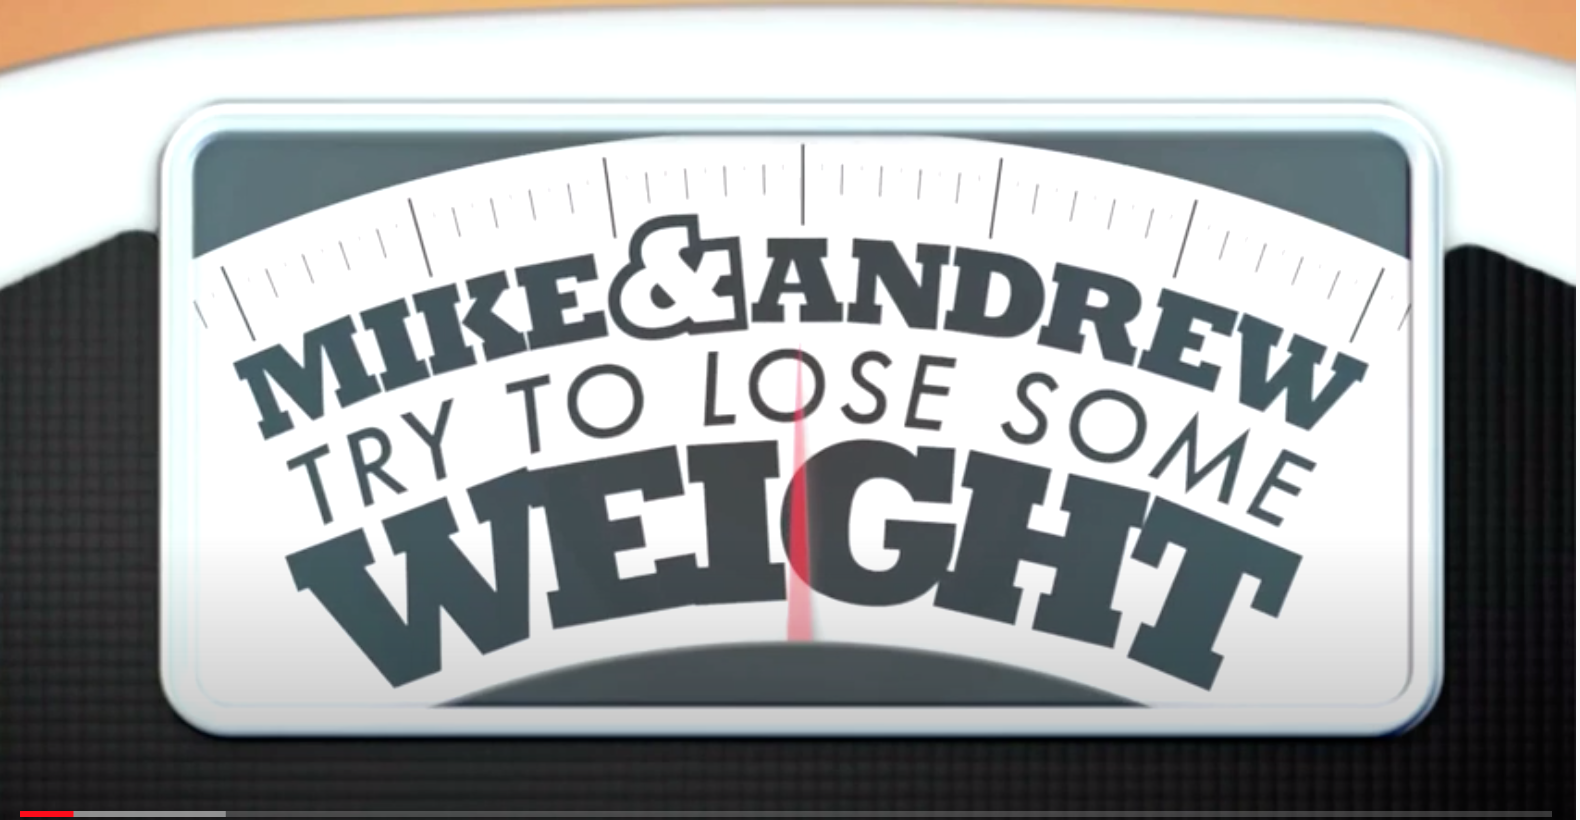 Mike & Andrew Try to Lose Some Weight